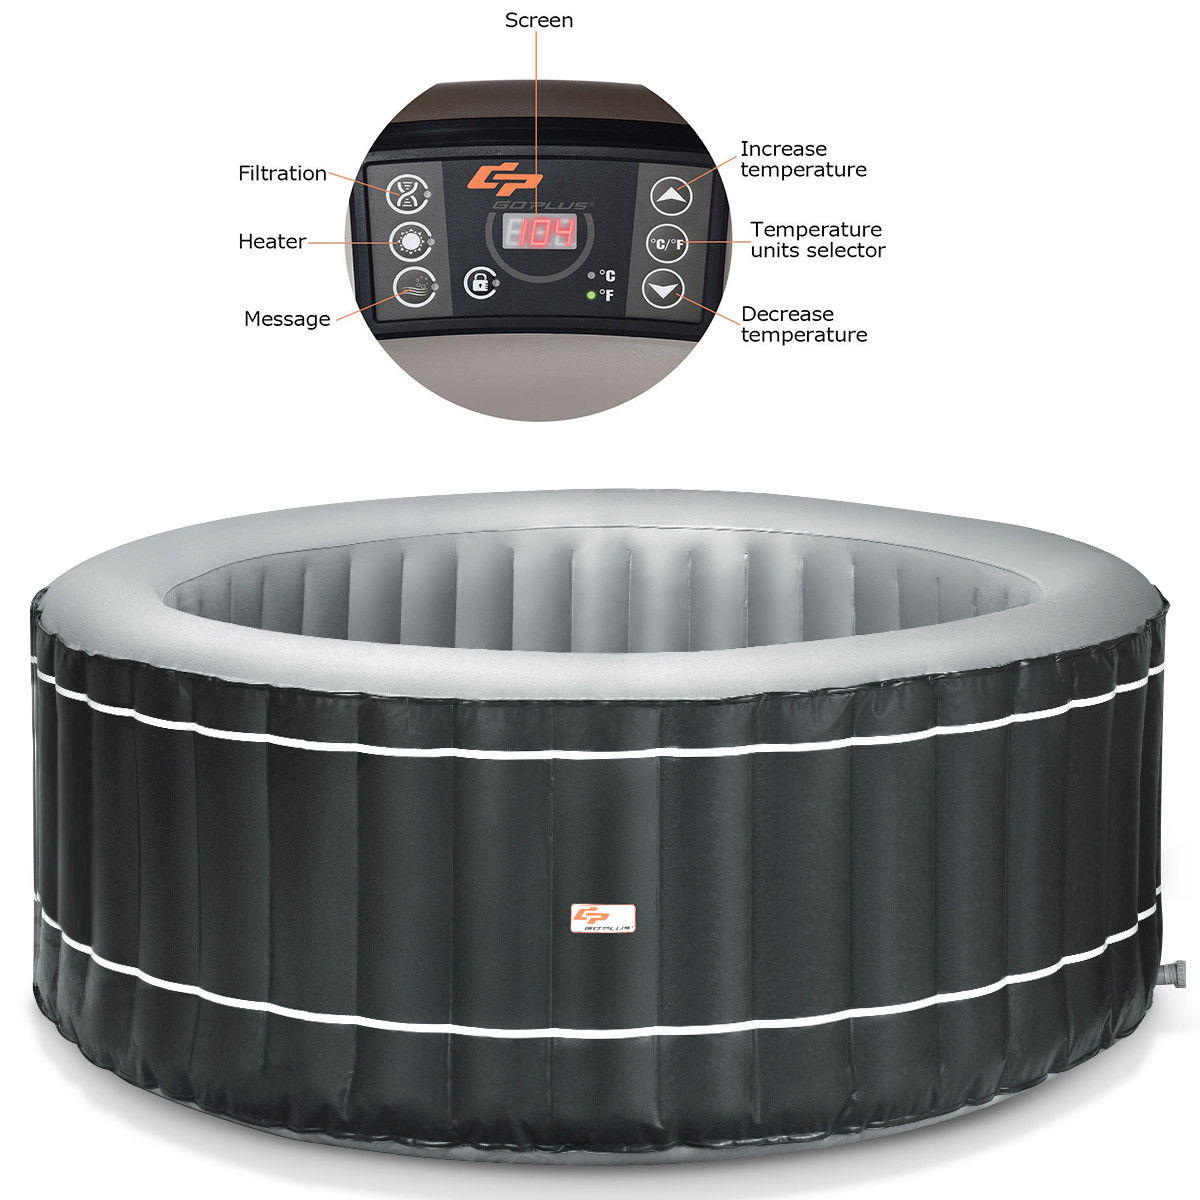 4-Person Inflatable Hot Tub Portable Outdoor Bubble Jet Leisure Massage Spa Gray - image 5 of 8